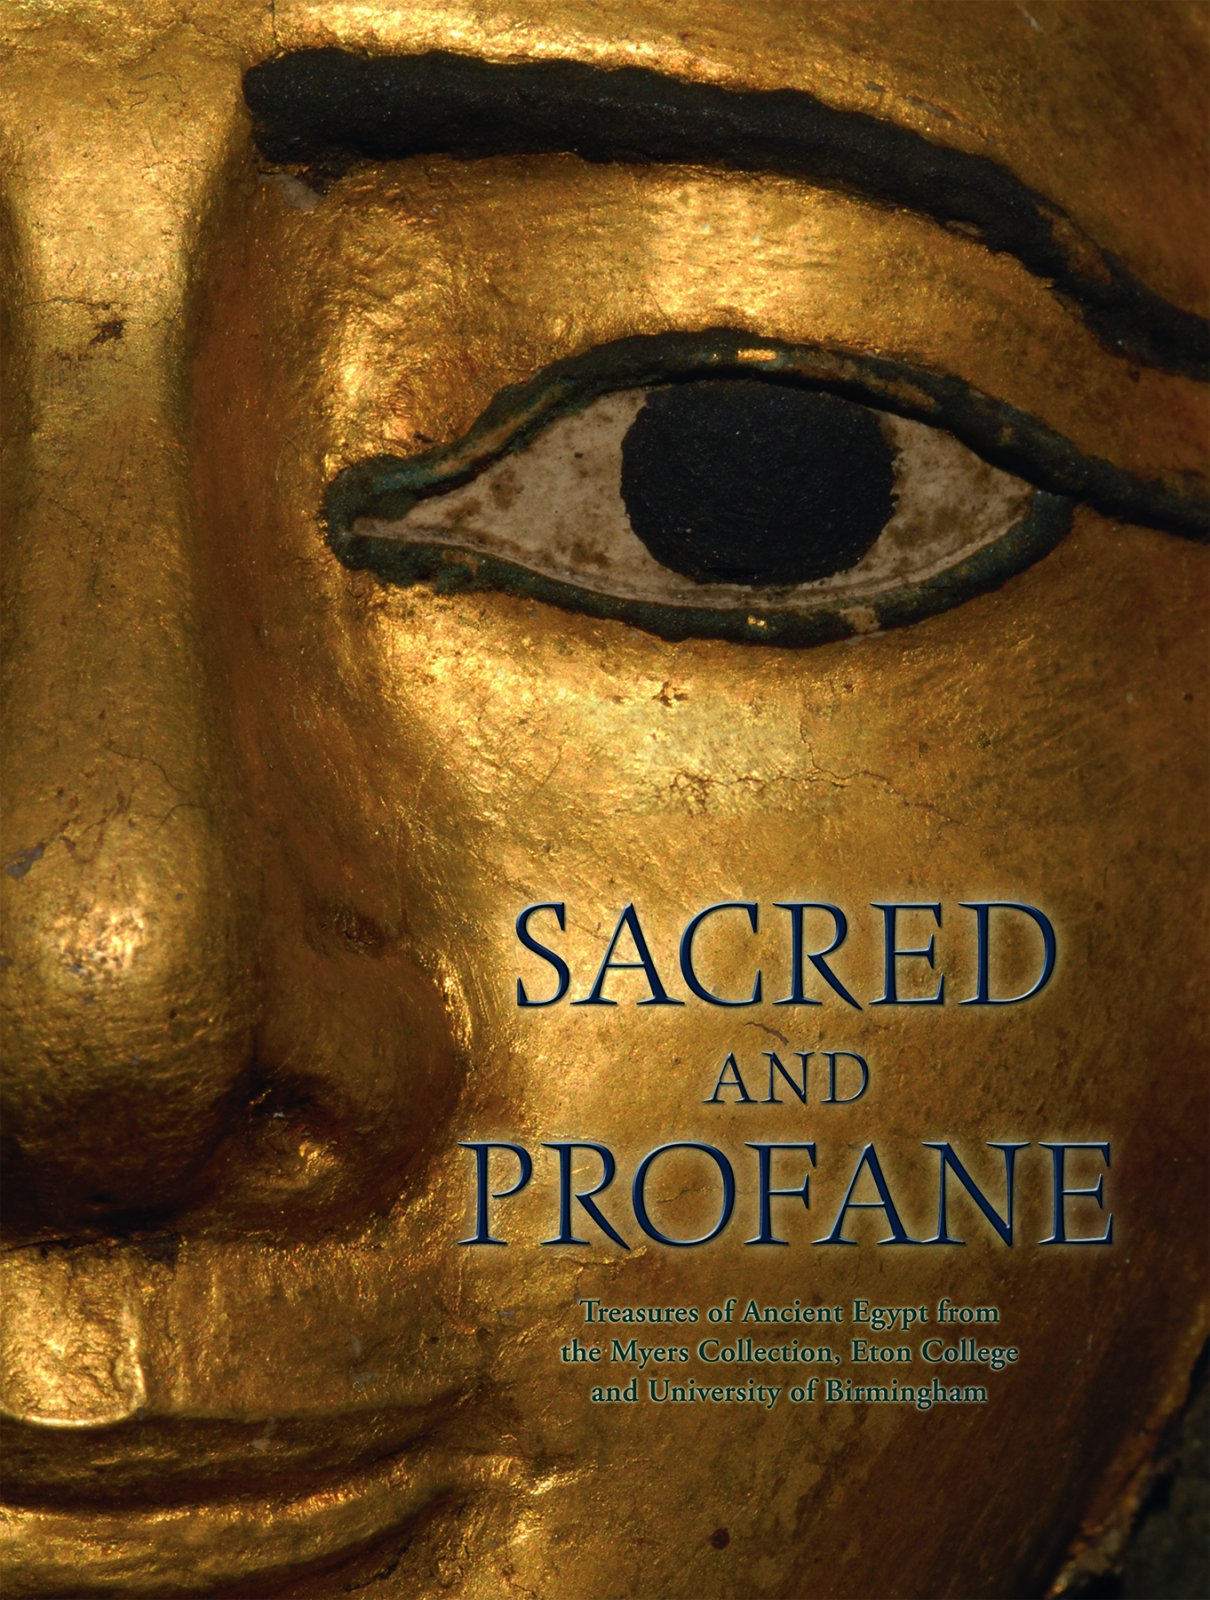 Read Online Sacred and Profane: Treasures of Ancient Egypt from the Myers Collection, Eton College and University of Birmingham ebook